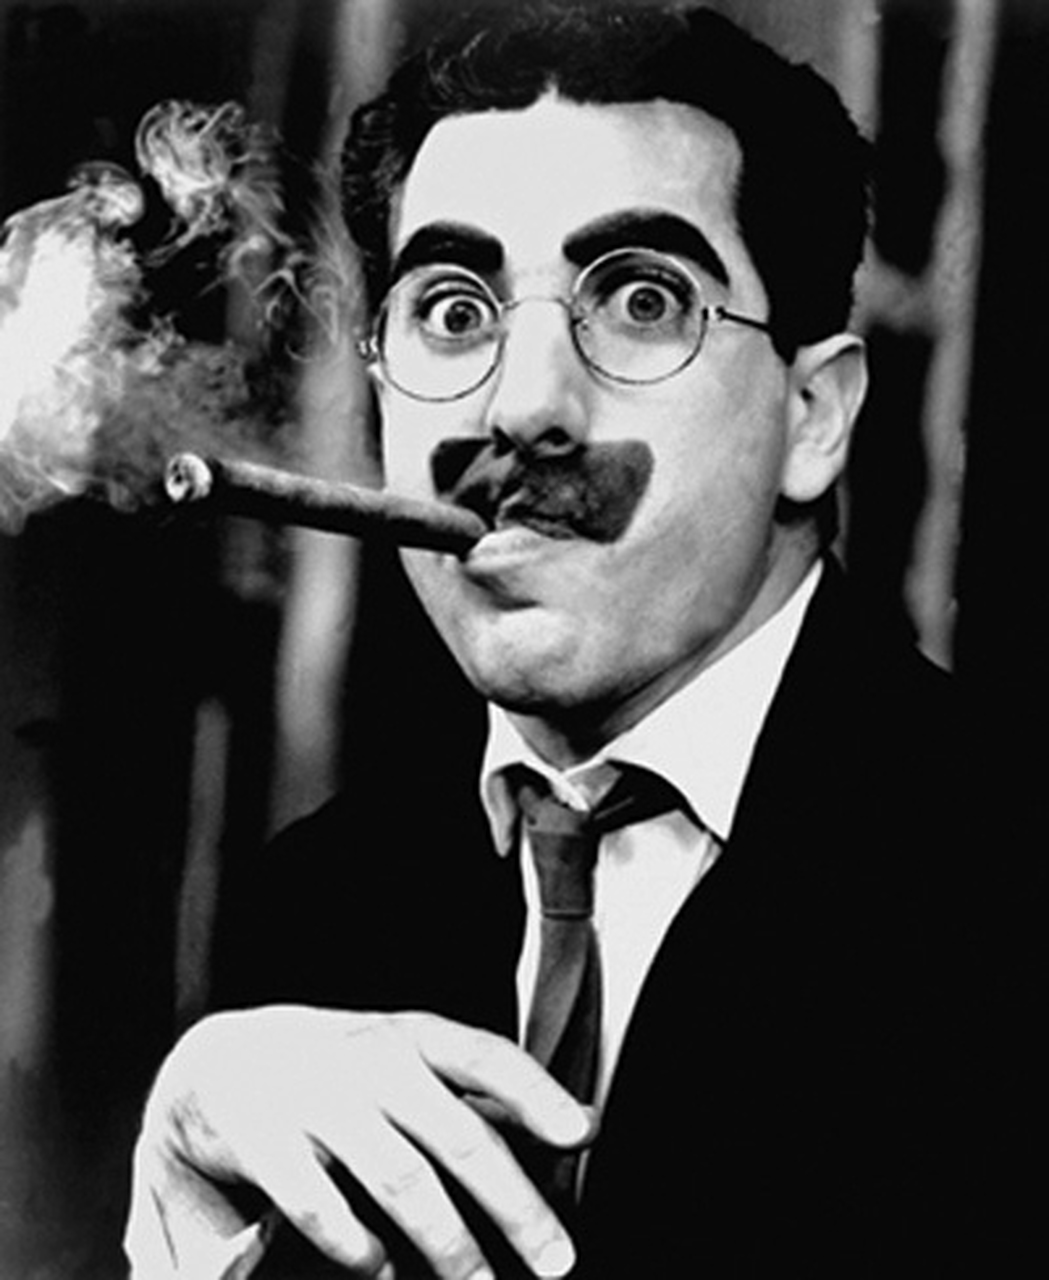 Groucho-Marx-Last-Will-&-Death-Certificate-PDF-Download1199-1300__41610.1362858828.jpg